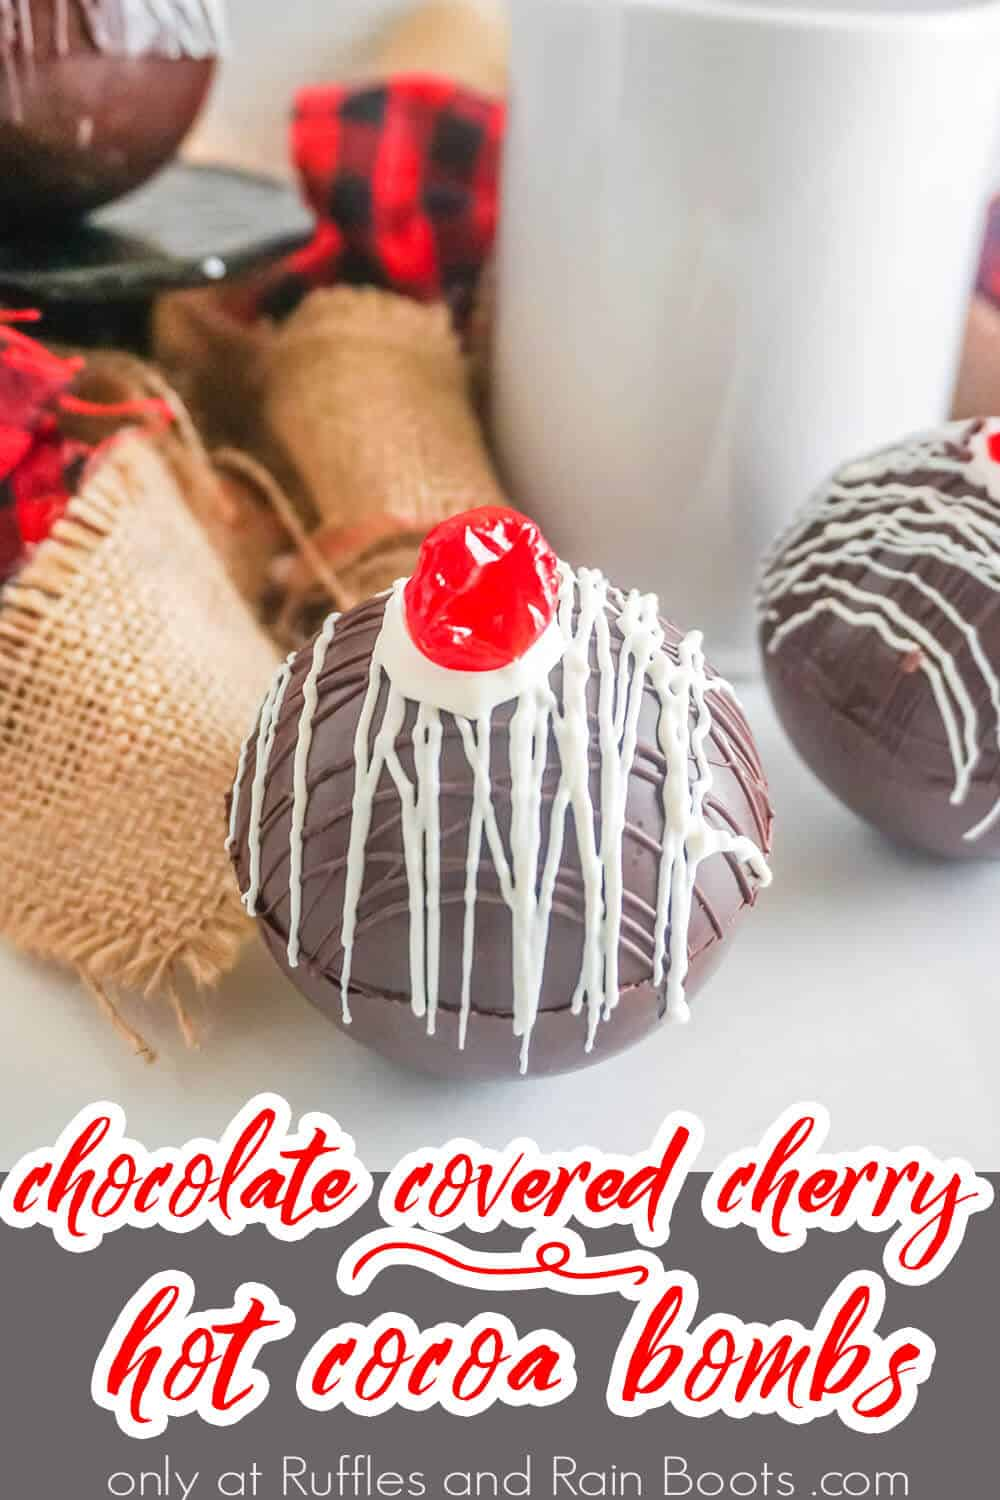 hot cocoa bombs with cherries with text which reads chocolate covered cherry hot cocoa bombs